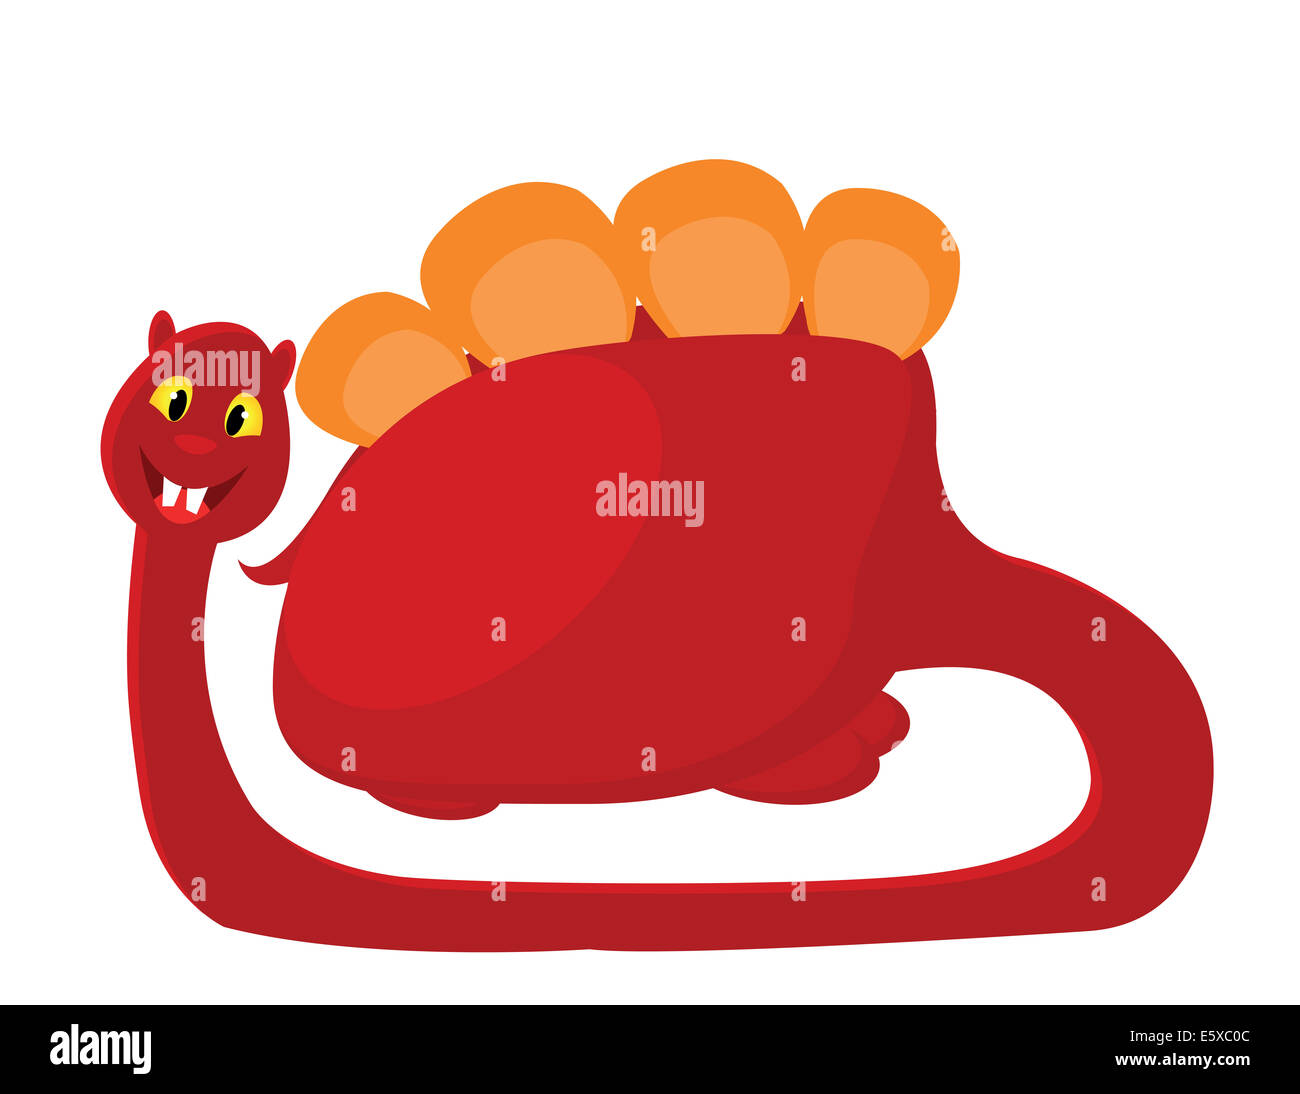 big red with orange dino on white background - Stock Image